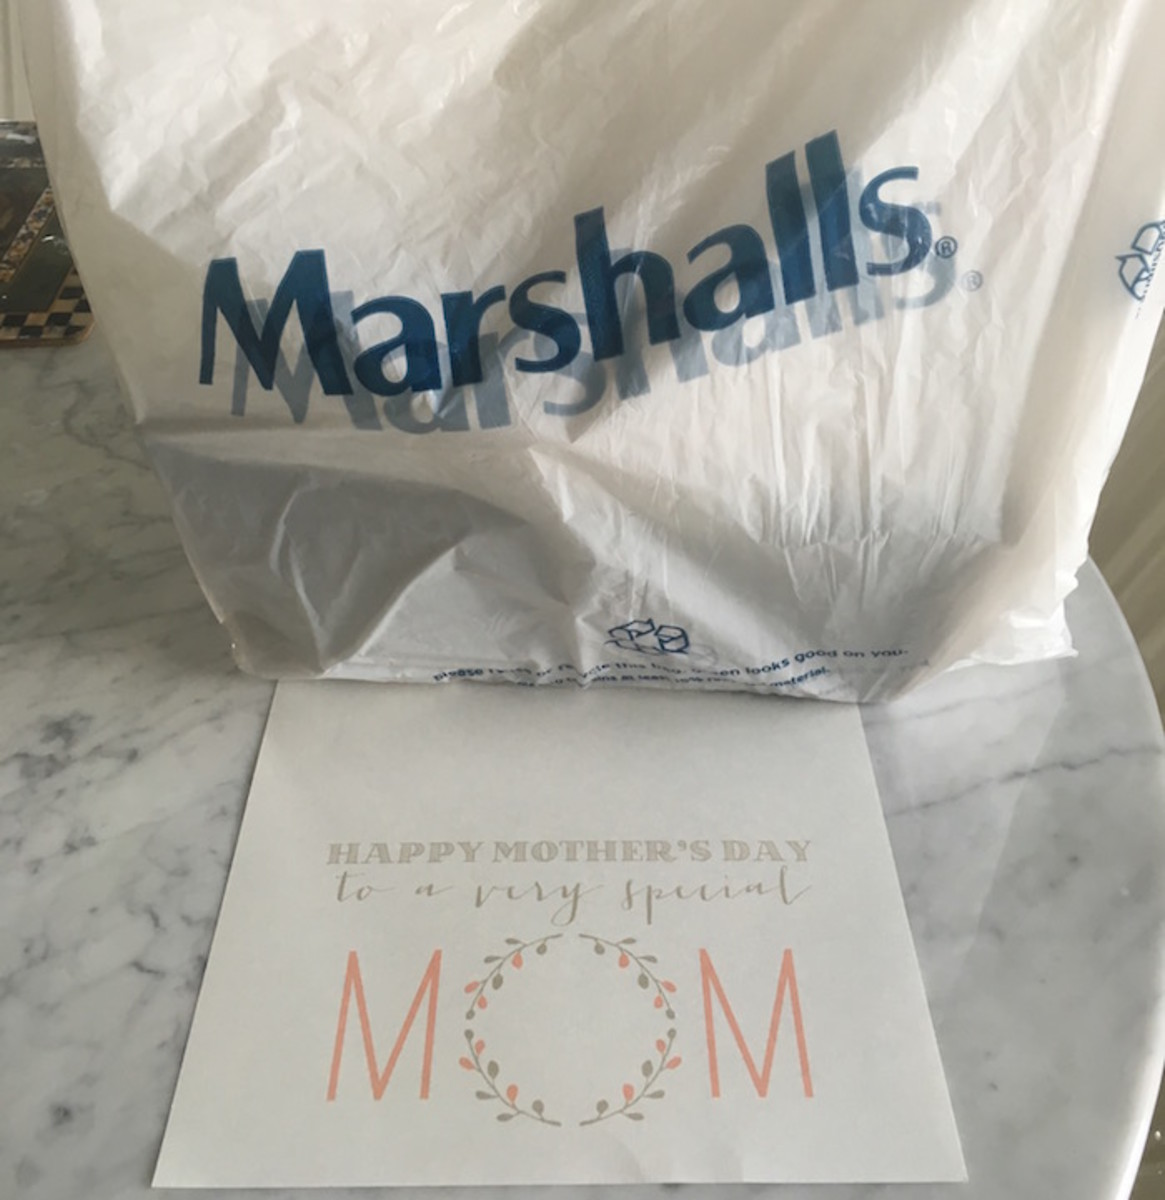 Marshalls Shopping Haul